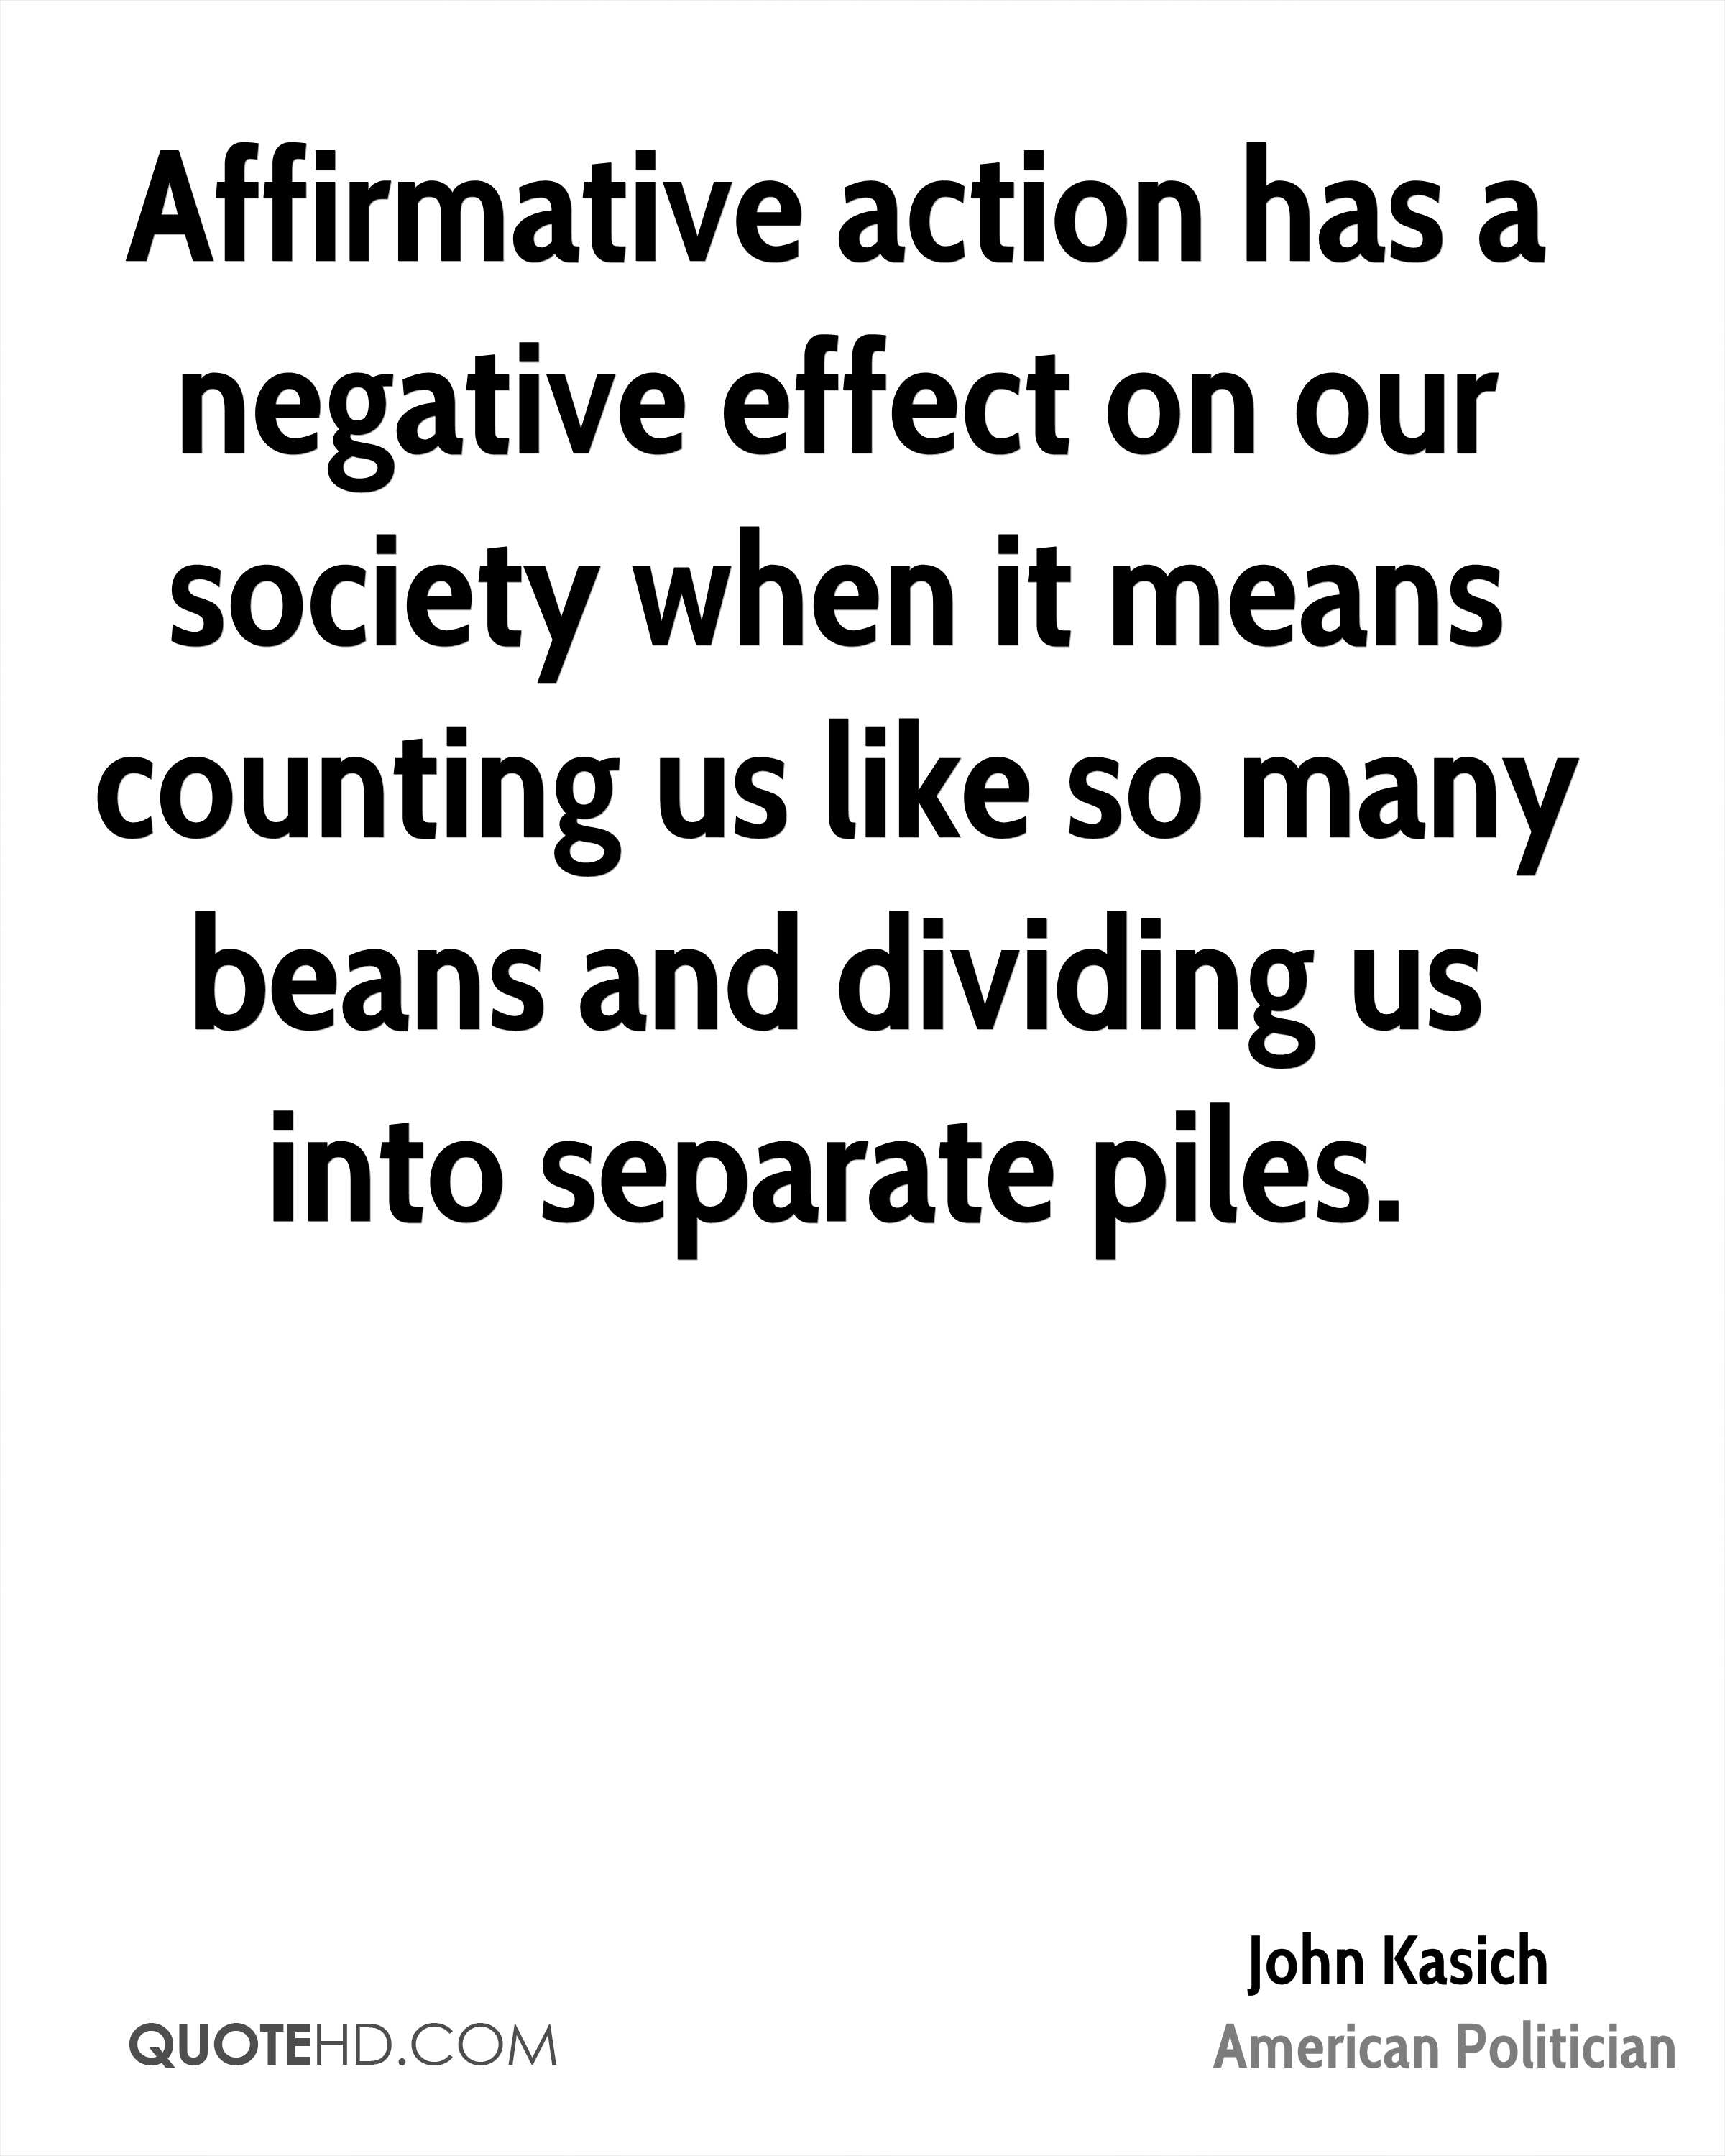 Affirmative action has a negative effect on our society when it means counting us like so many beans and dividing us into separate piles.